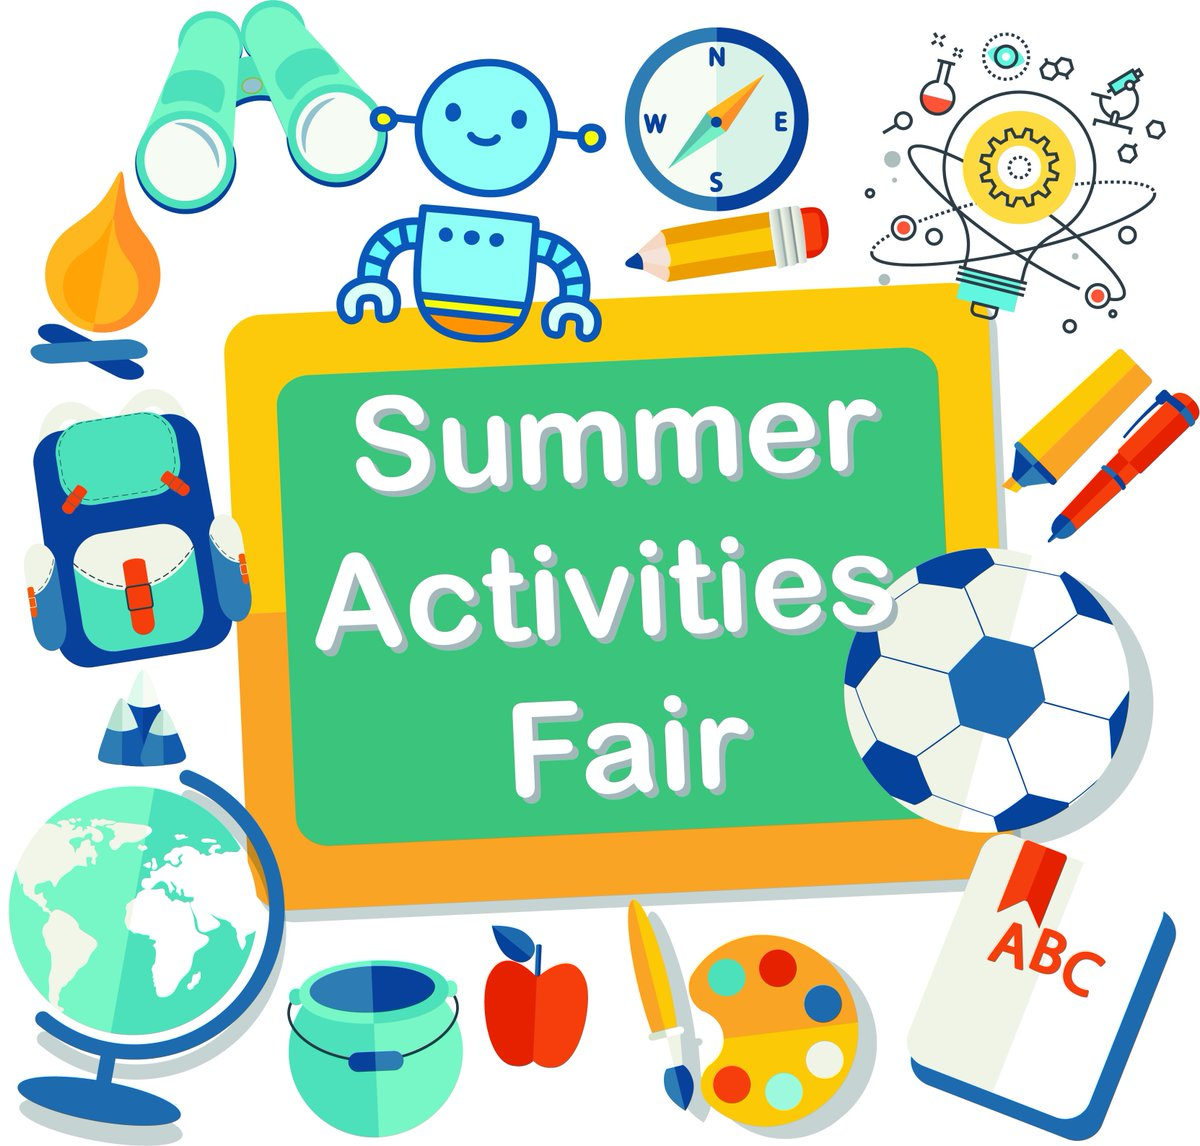 Come get ready for summer at the Summer Activities Fair on Friday, Feb. 8 from 6-8 p.m. at Kenmore by exploring the available summer activity programs throughout the region and the various enrichment programs they offer for children of all ages. <a target='_blank' href='http://search.twitter.com/search?q=APSSummerFair'><a target='_blank' href='https://twitter.com/hashtag/APSSummerFair?src=hash'>#APSSummerFair</a></a> <a target='_blank' href='https://t.co/mkW1qQRqkF'>https://t.co/mkW1qQRqkF</a>